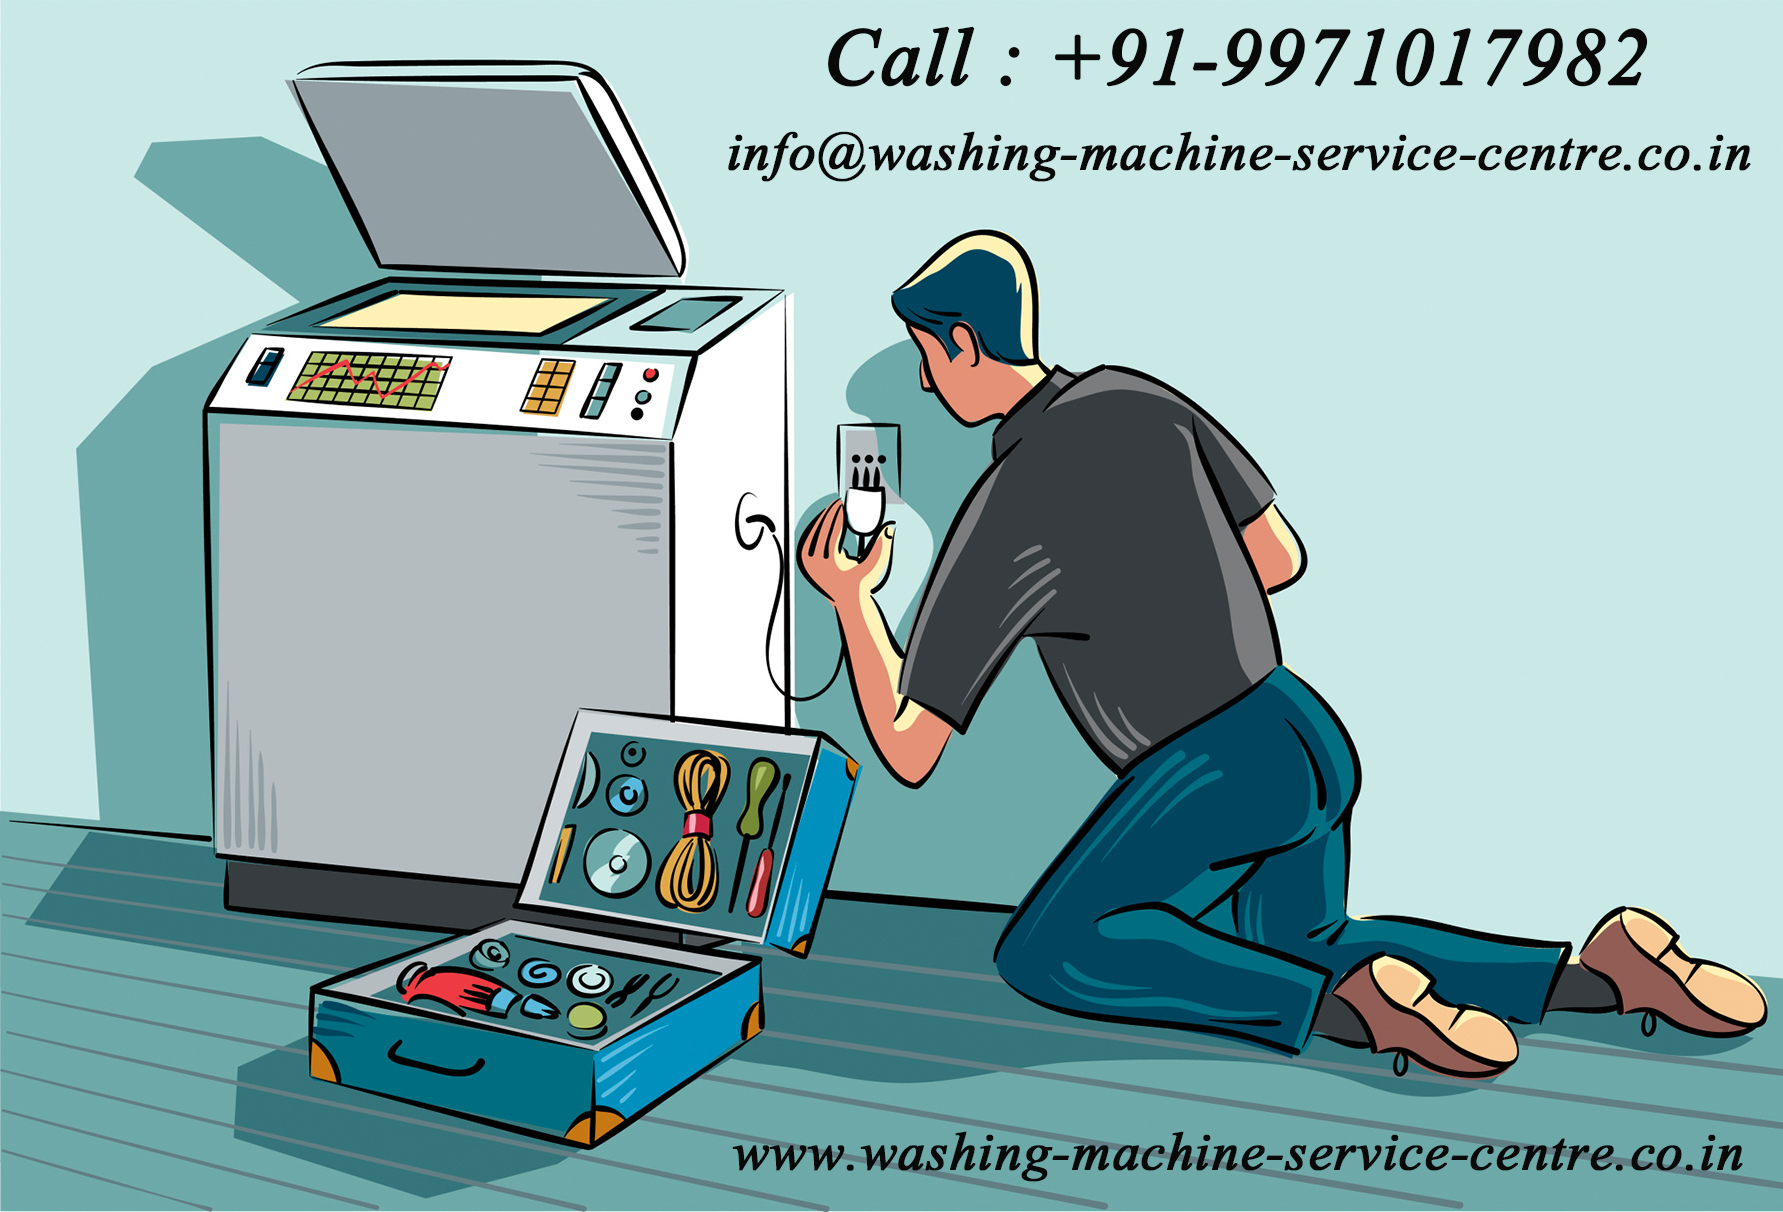 Image for Washing Machine Repair Service Centre In Gurgaon